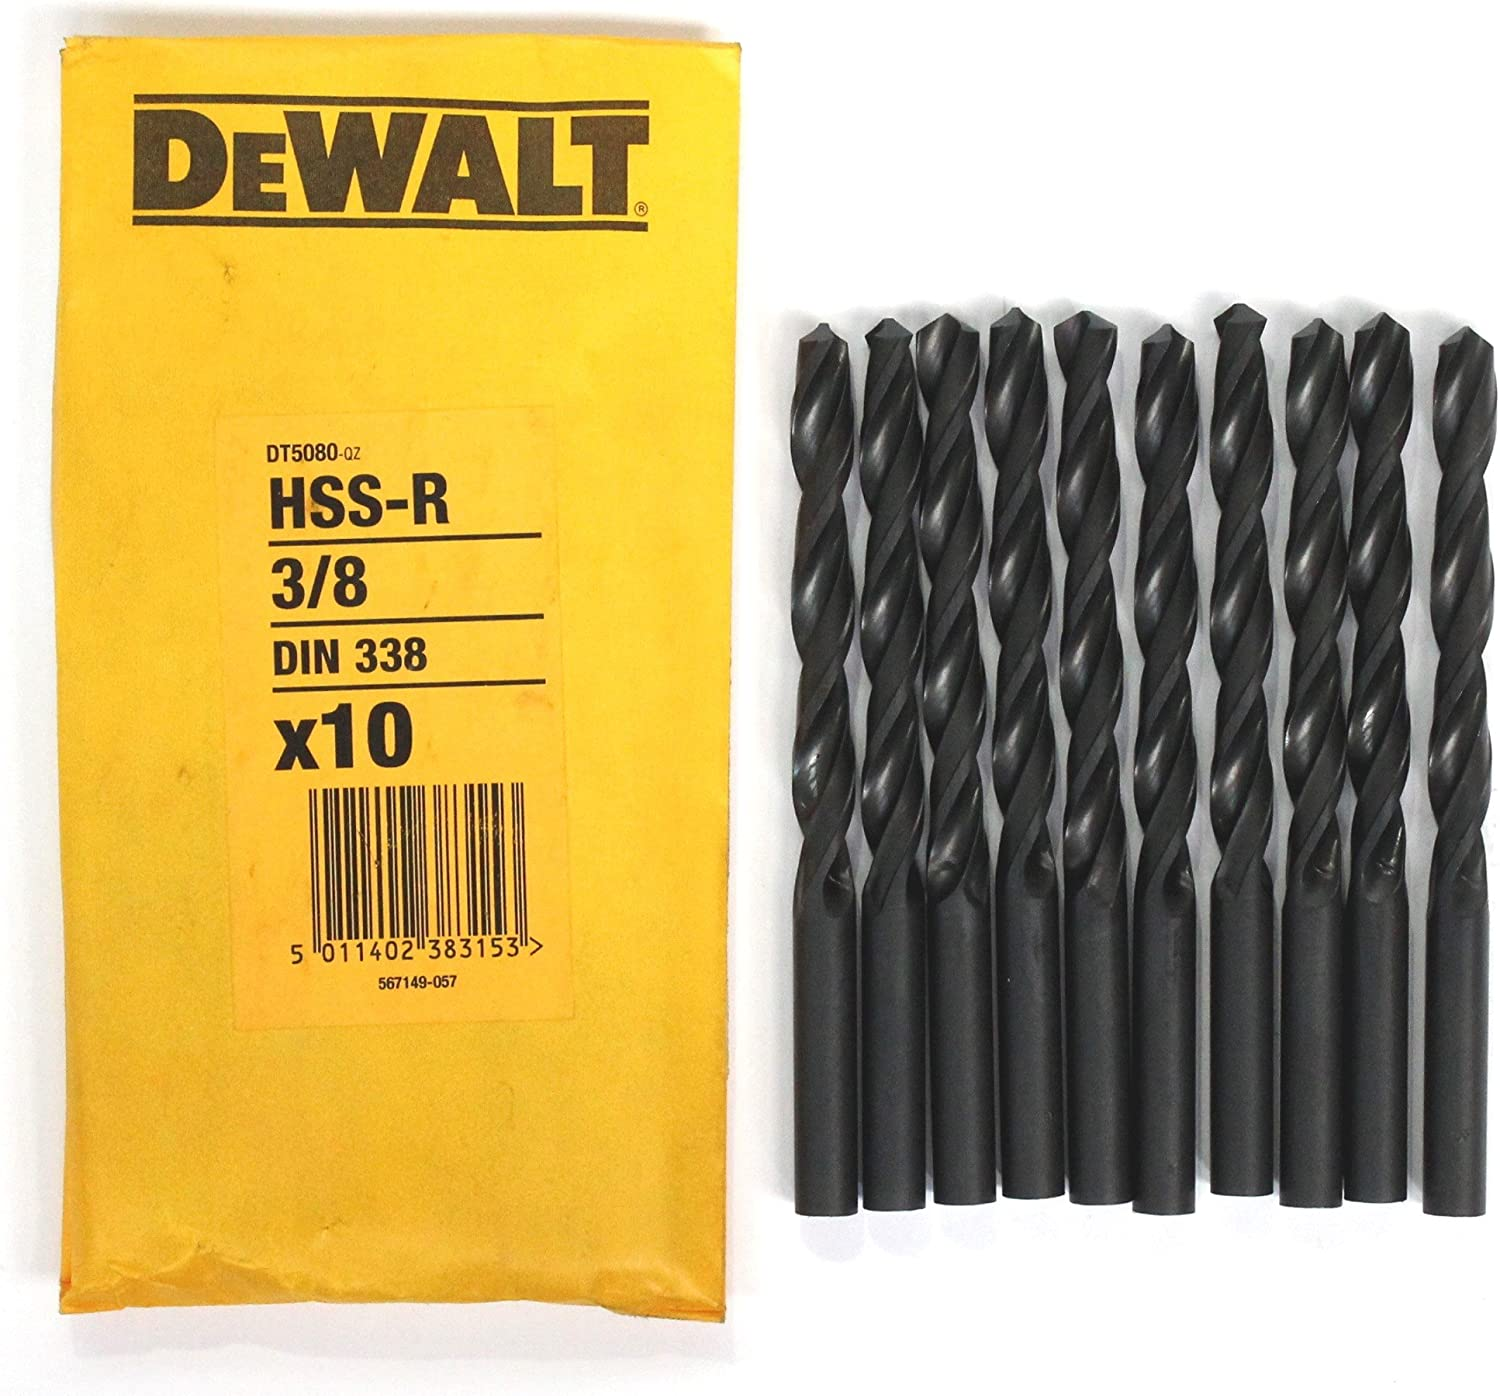 Hss drill made in germany 3,1mm